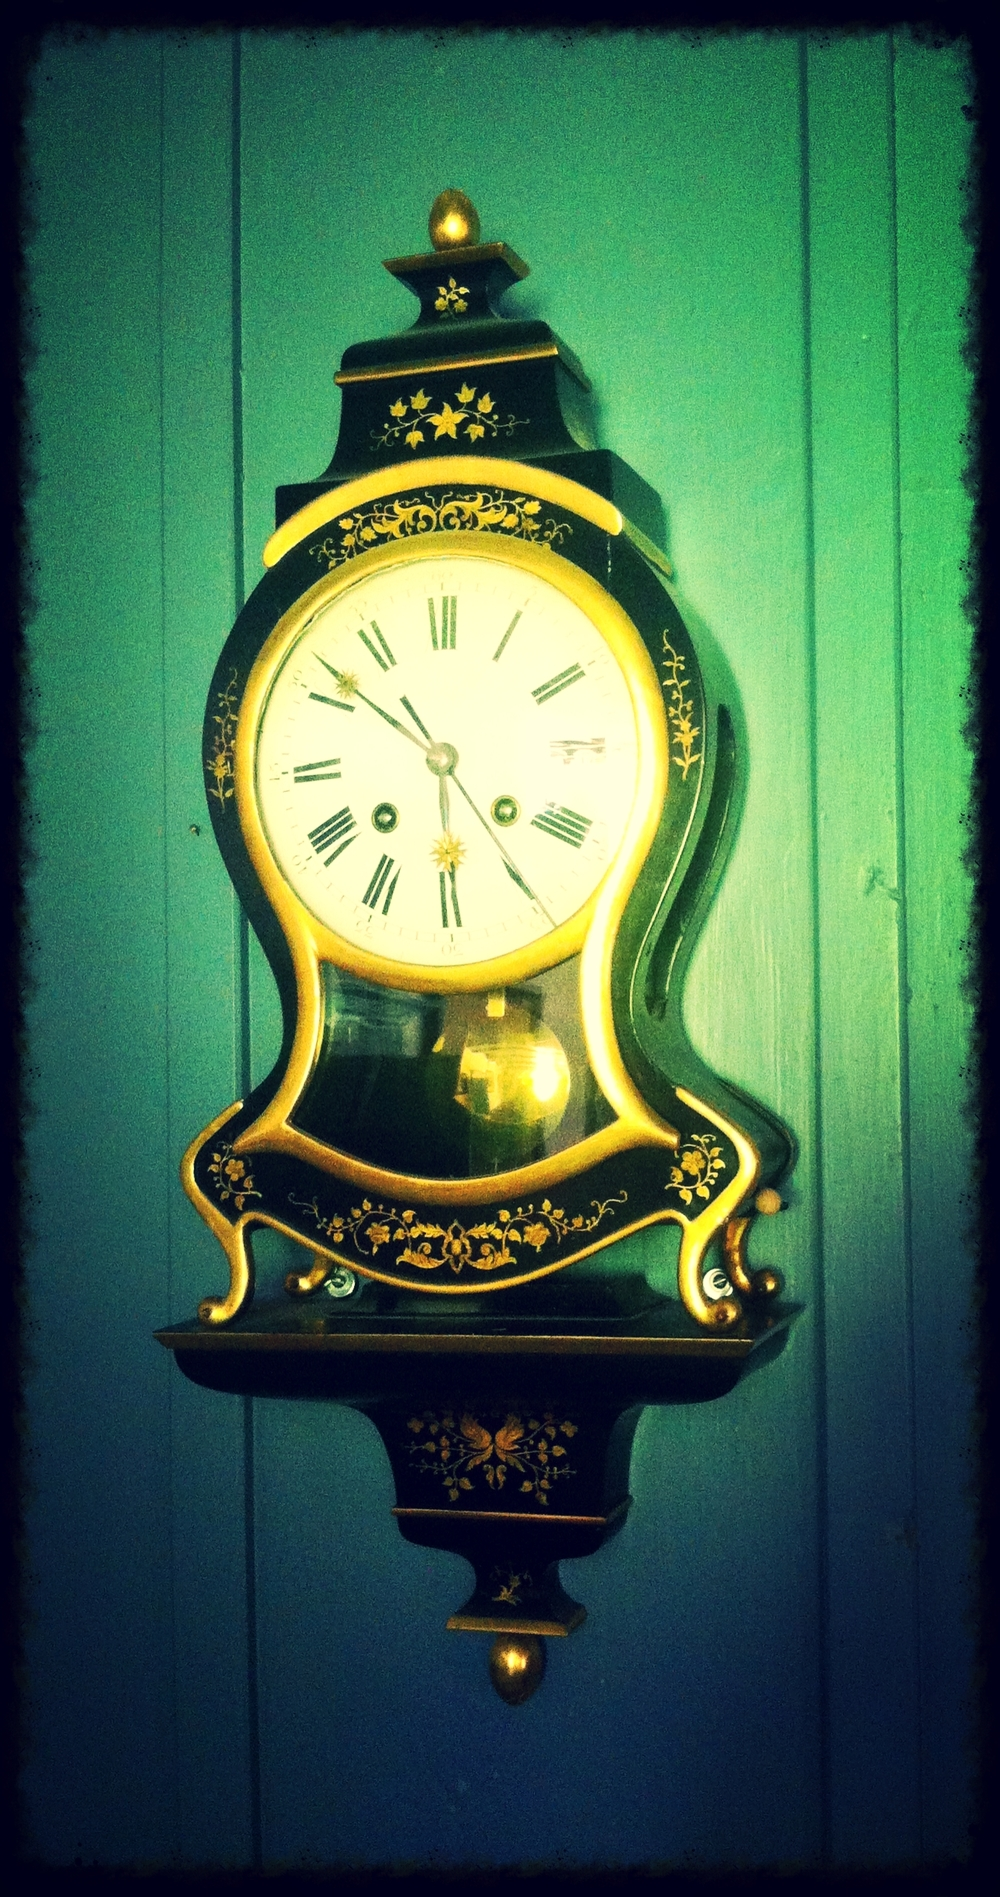 An_old_fashioned_clock_on_a_wall